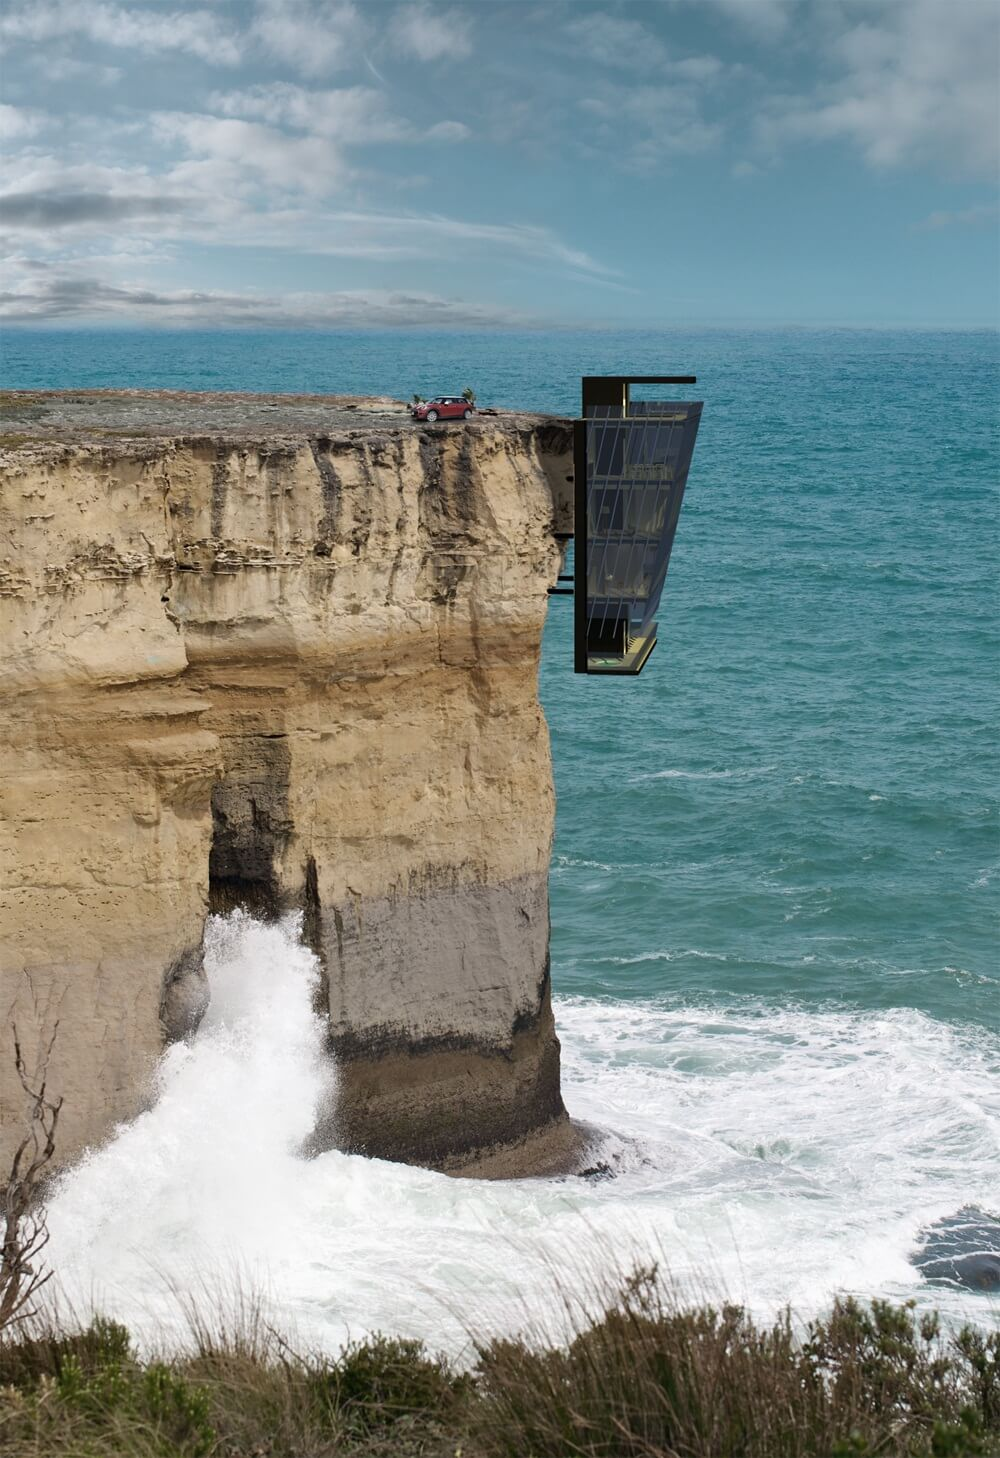 A Five-Story House That Hangs Off the Edge of a Cliff